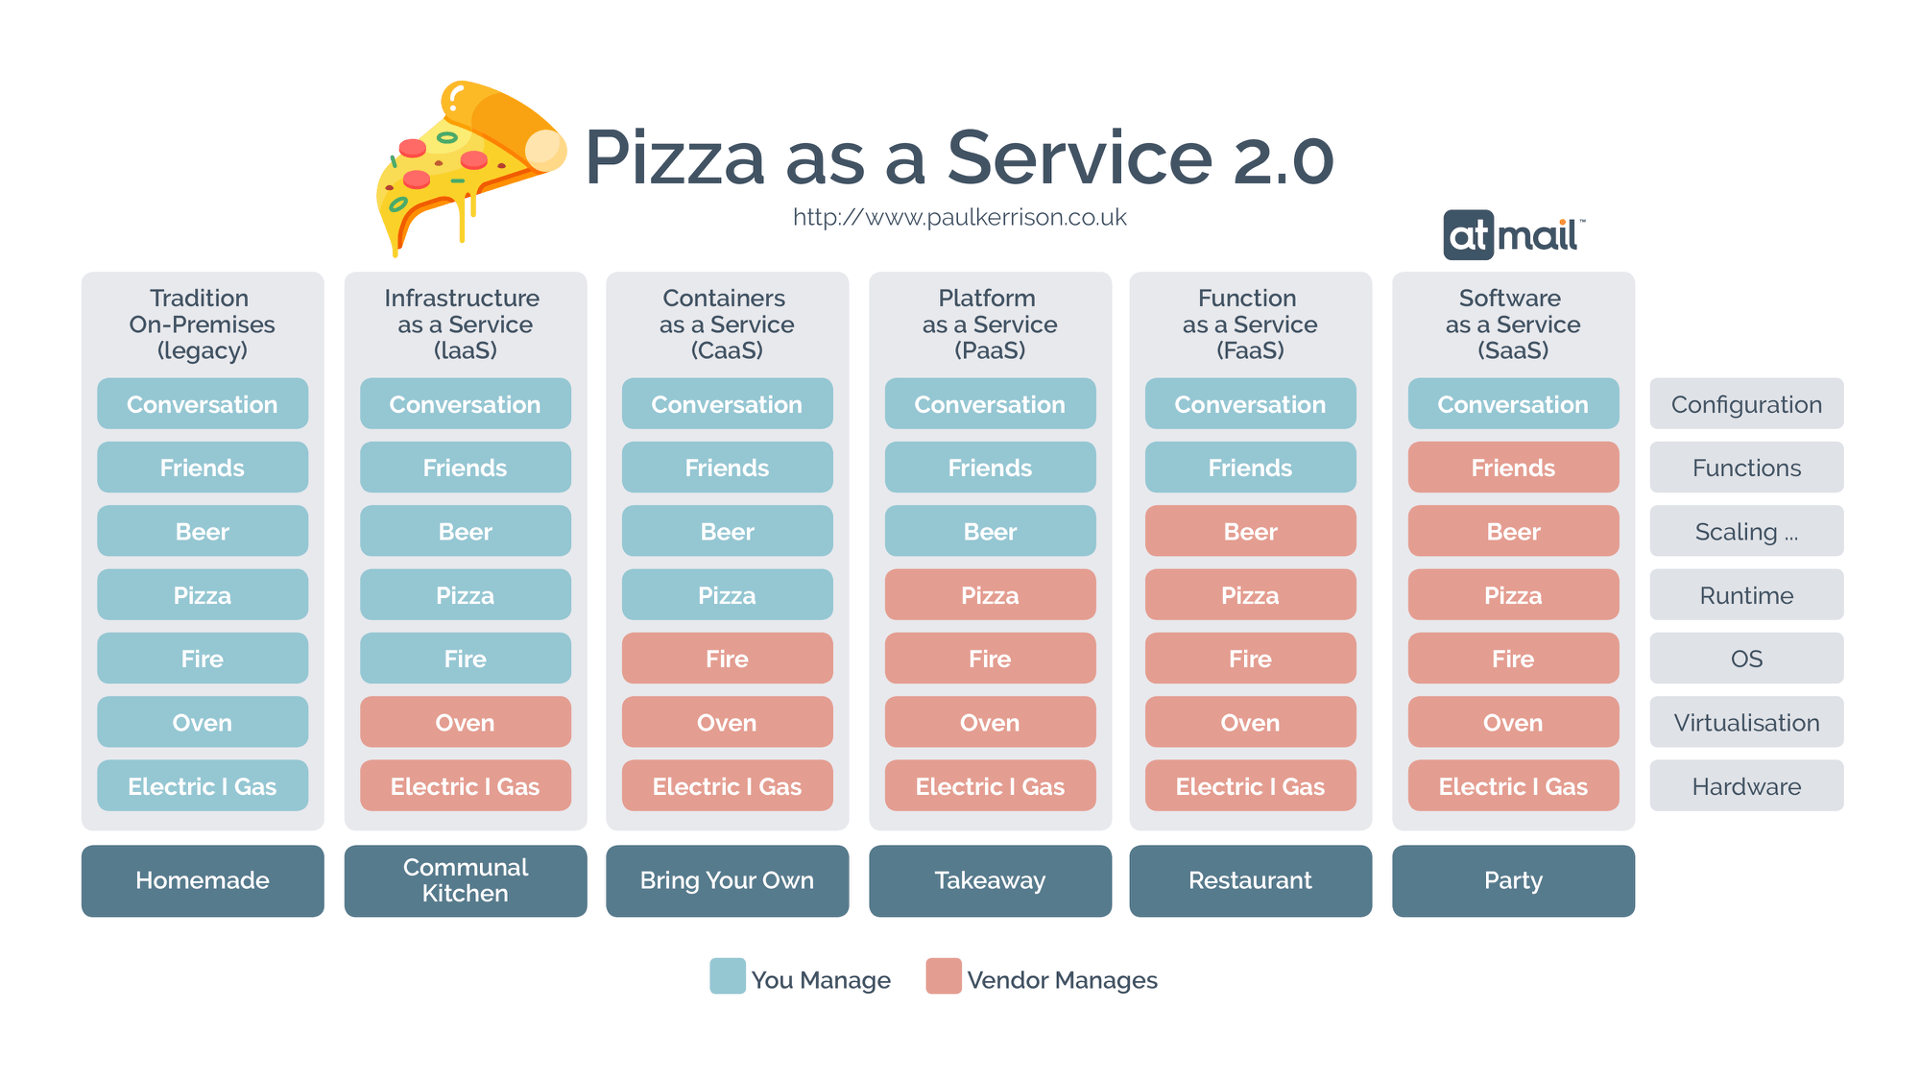 Pizza as a Service - Paul Kerrison - email as a service - atmail email hosting experts